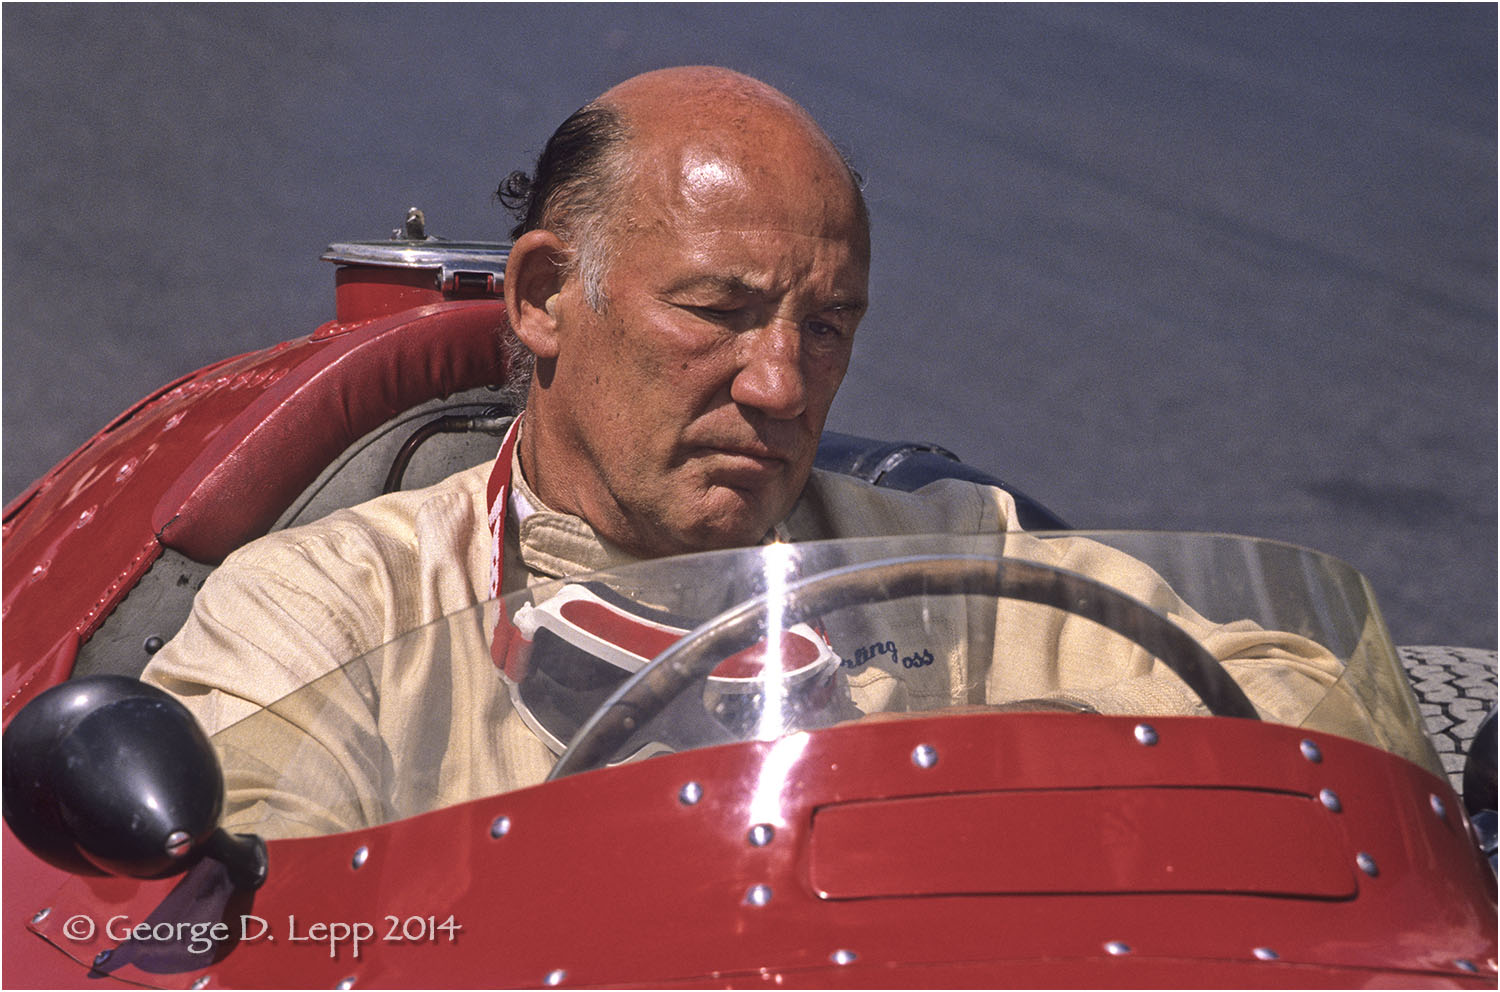 Sterling Moss in a Maserati F1, Vintage Racing, Limerock, CT. © George D. Lepp 2014  T-RA-VI-0004